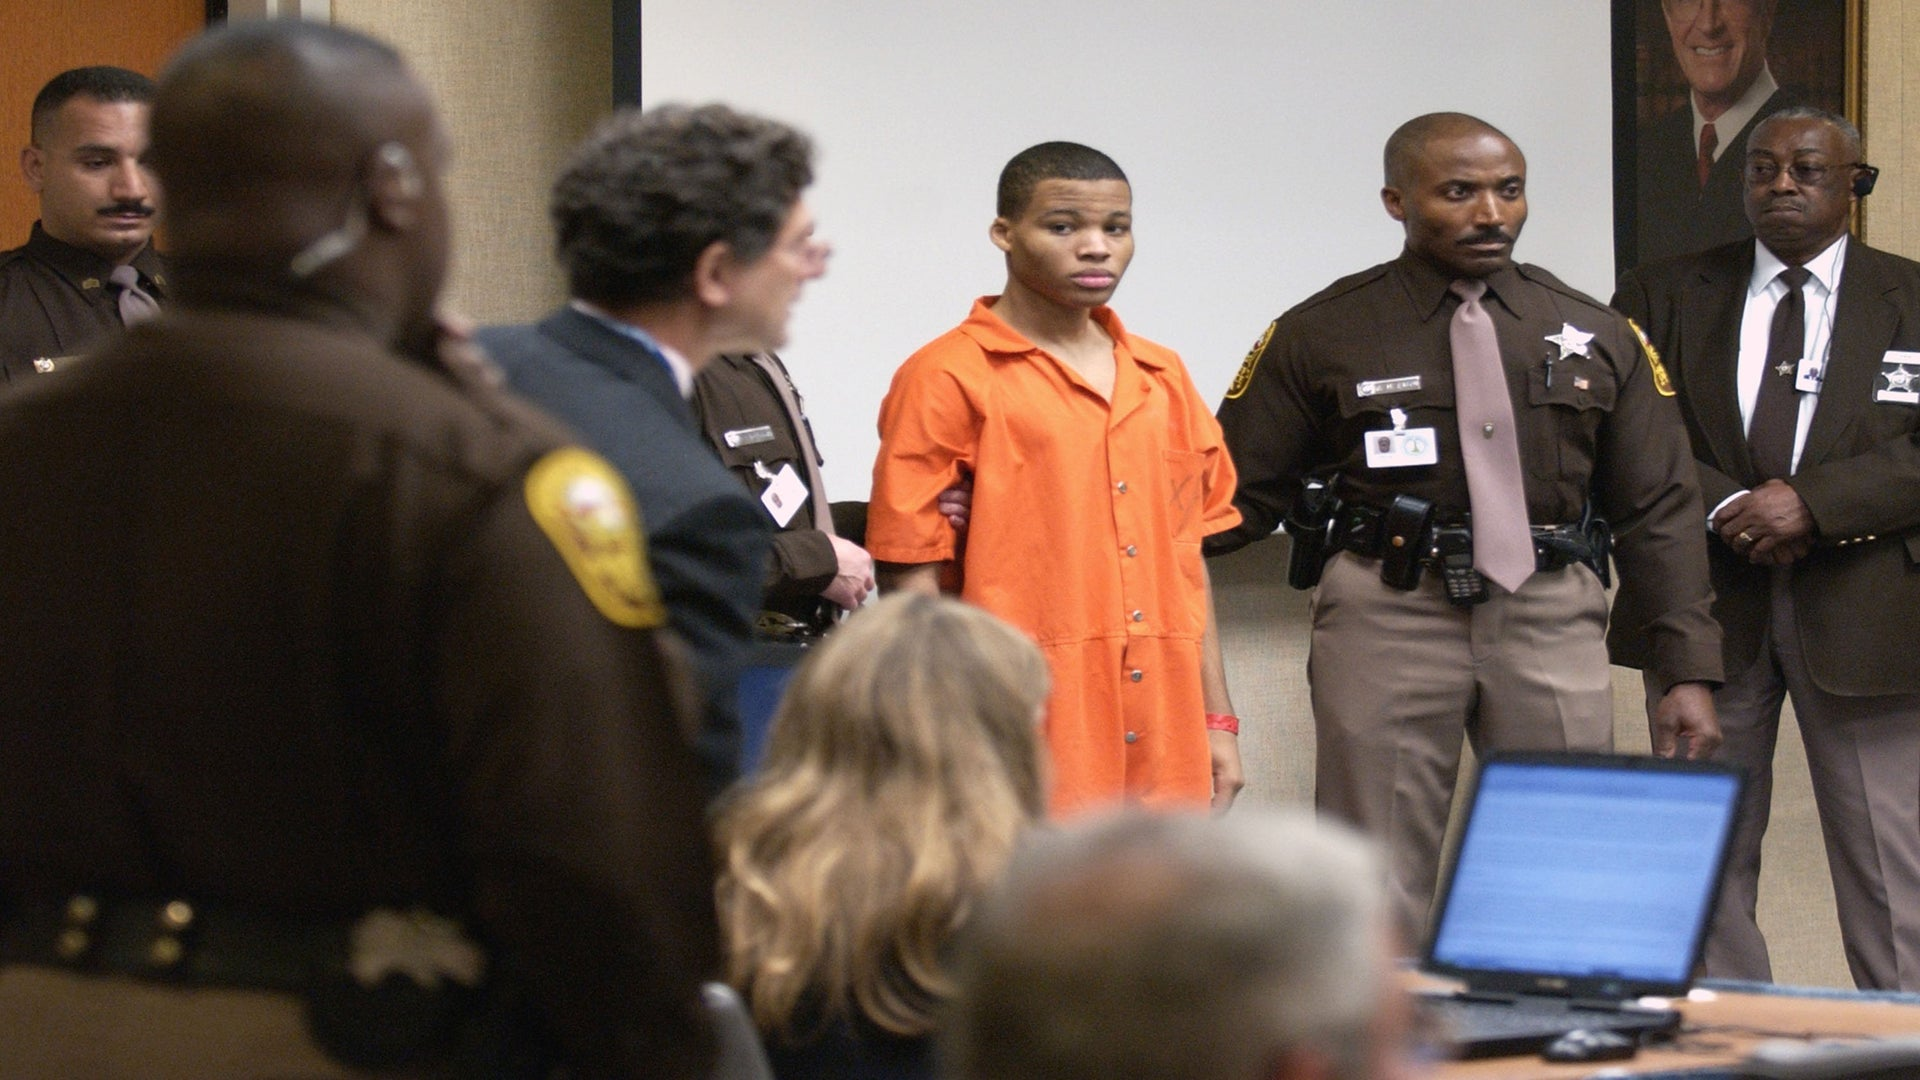 Judge Throws Out Life Sentences for D.C. Sniper Lee Boyd Malvo